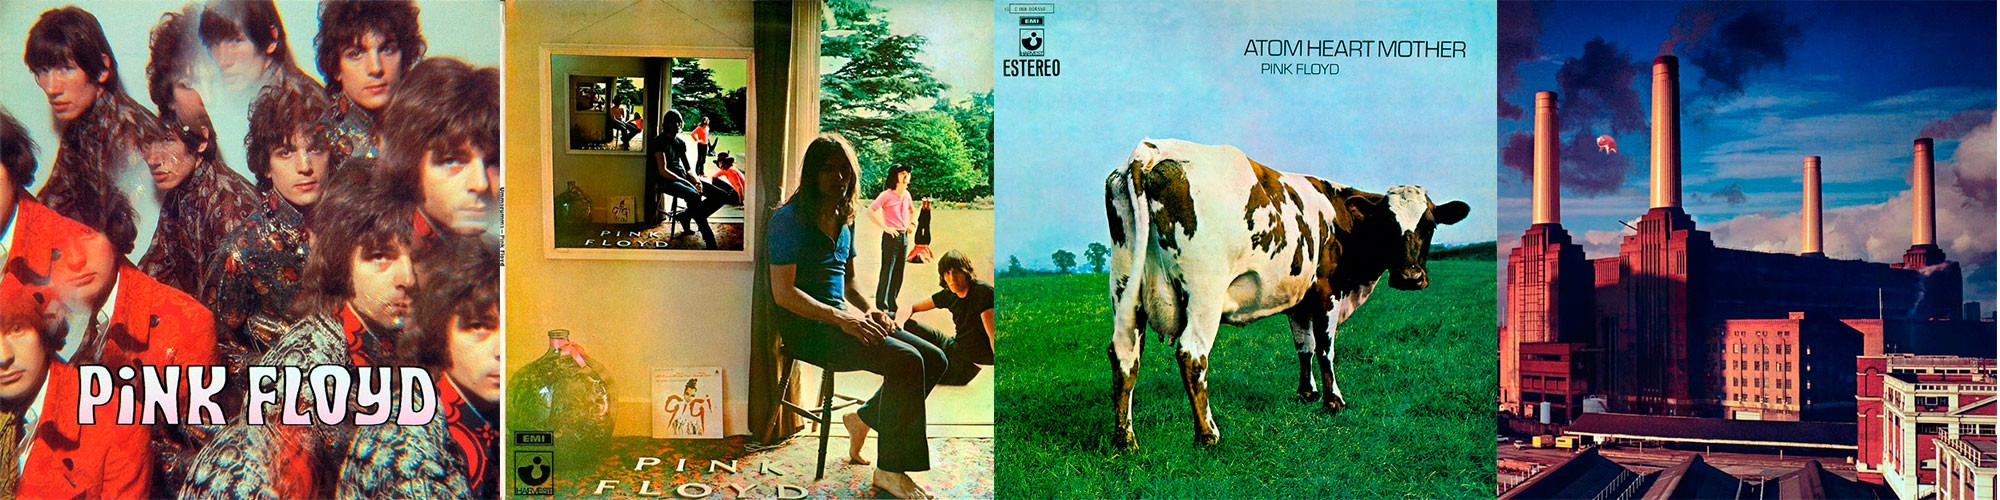 1967 Pink_Floyd The Piper At The Gates Of Dawn, 1969 Ummagumma, 1970 Atom Heart Mother y 1977 Animals